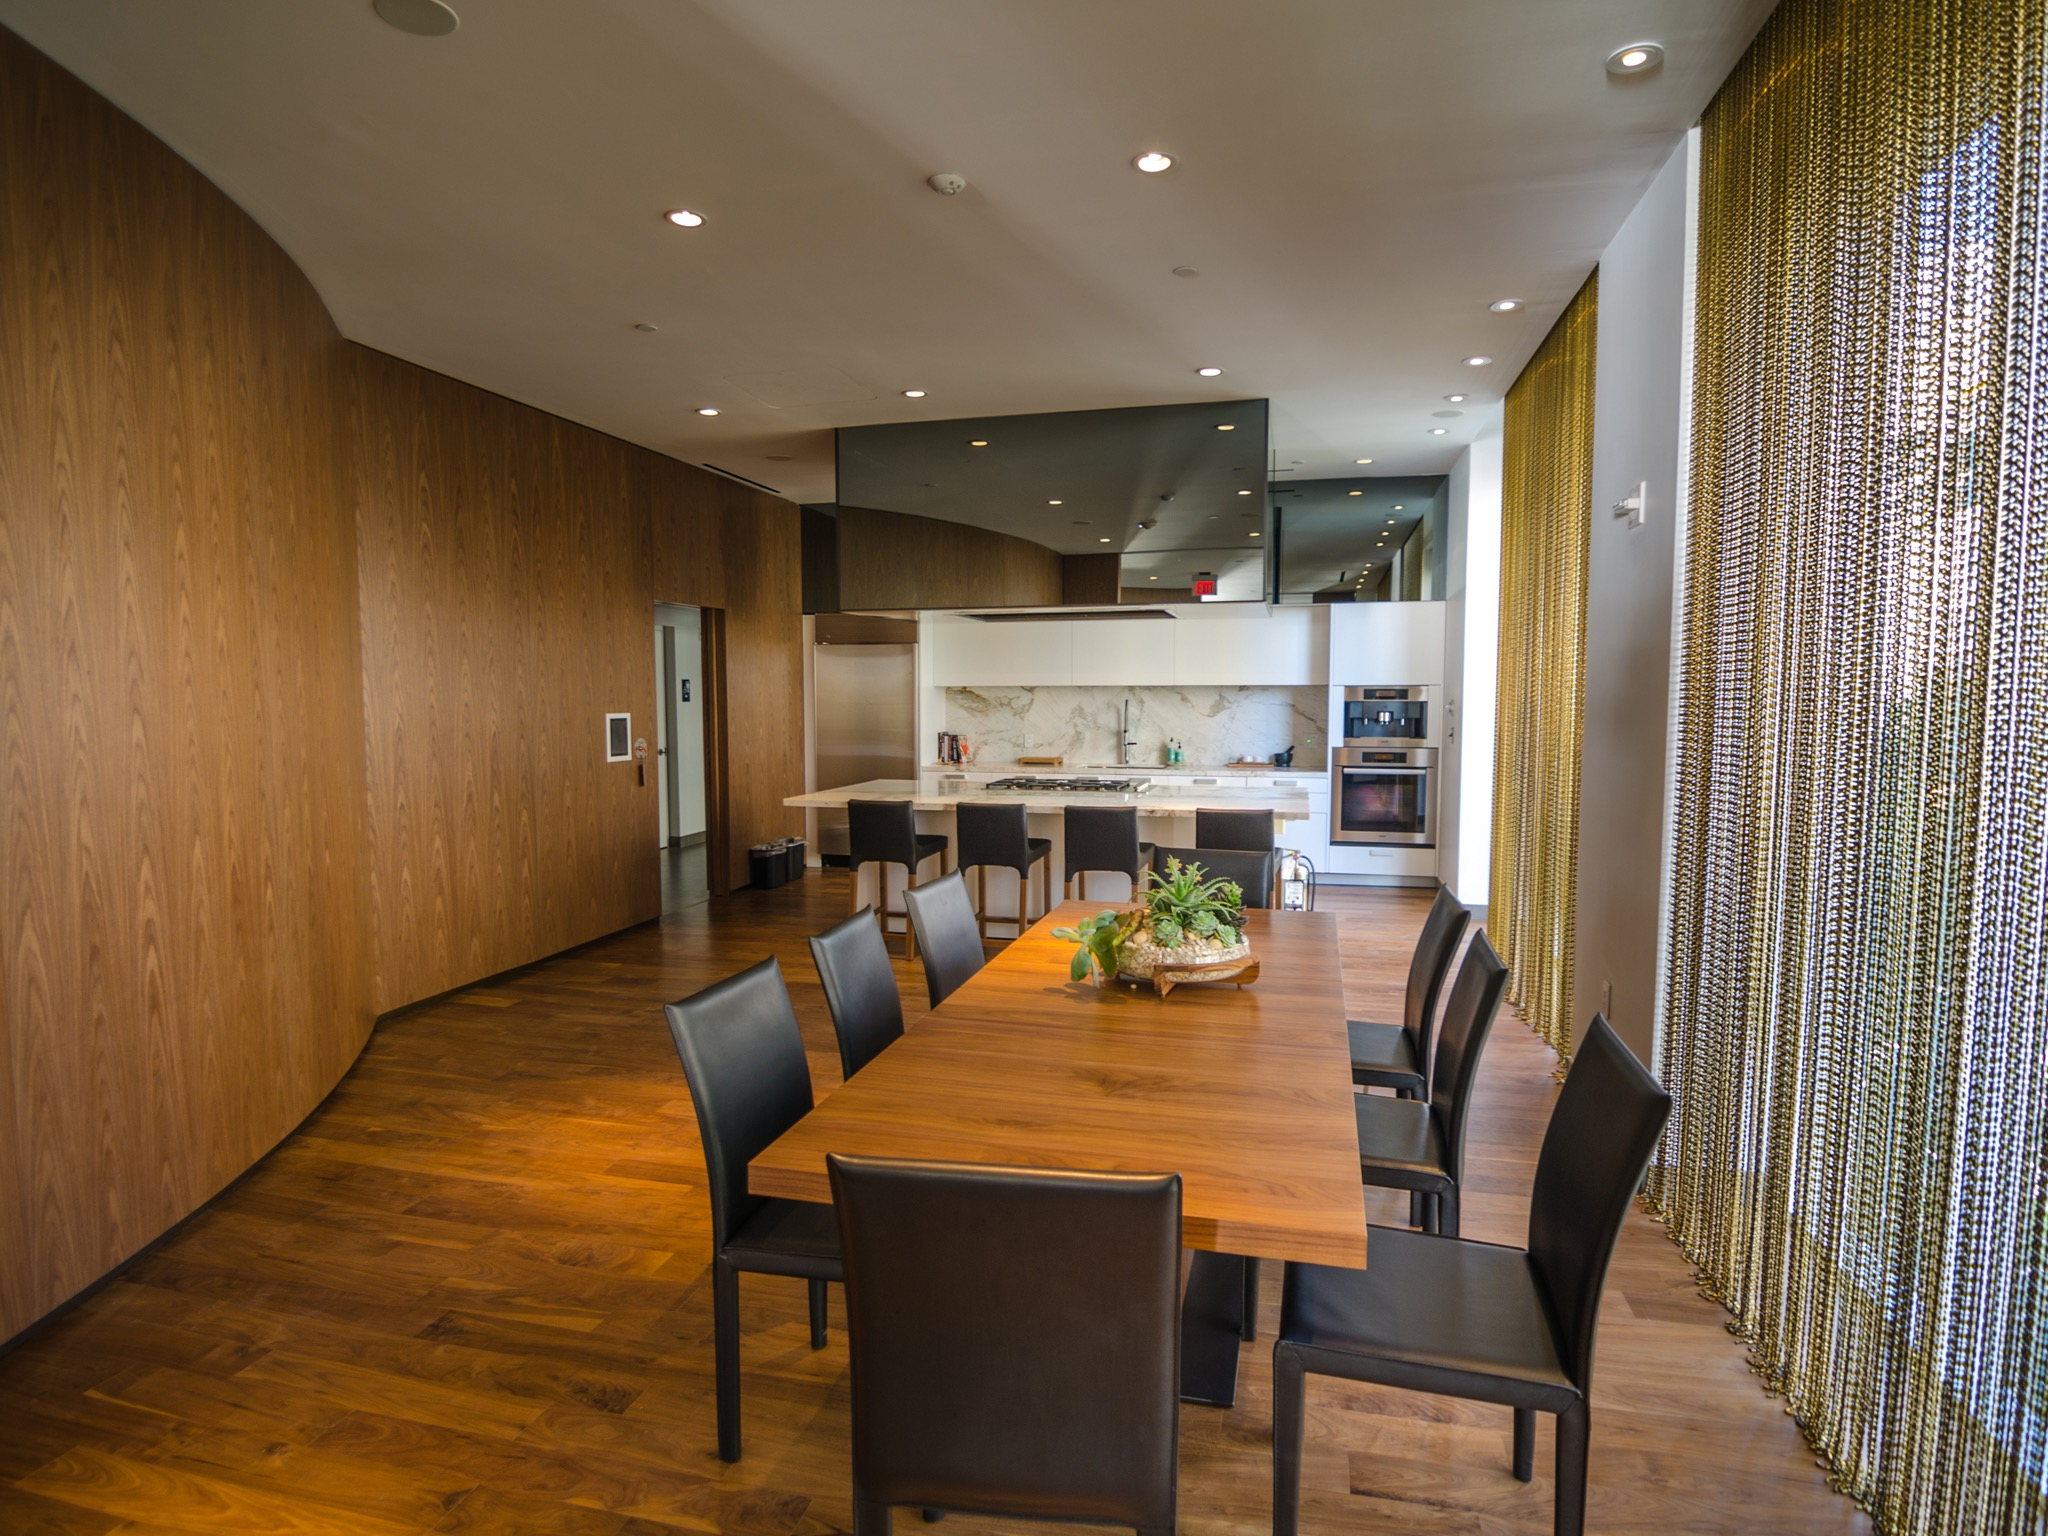 Contemporary Open Concept Dining Room And Kitchen Combo With Curved Wood Wall (View 7 of 20)